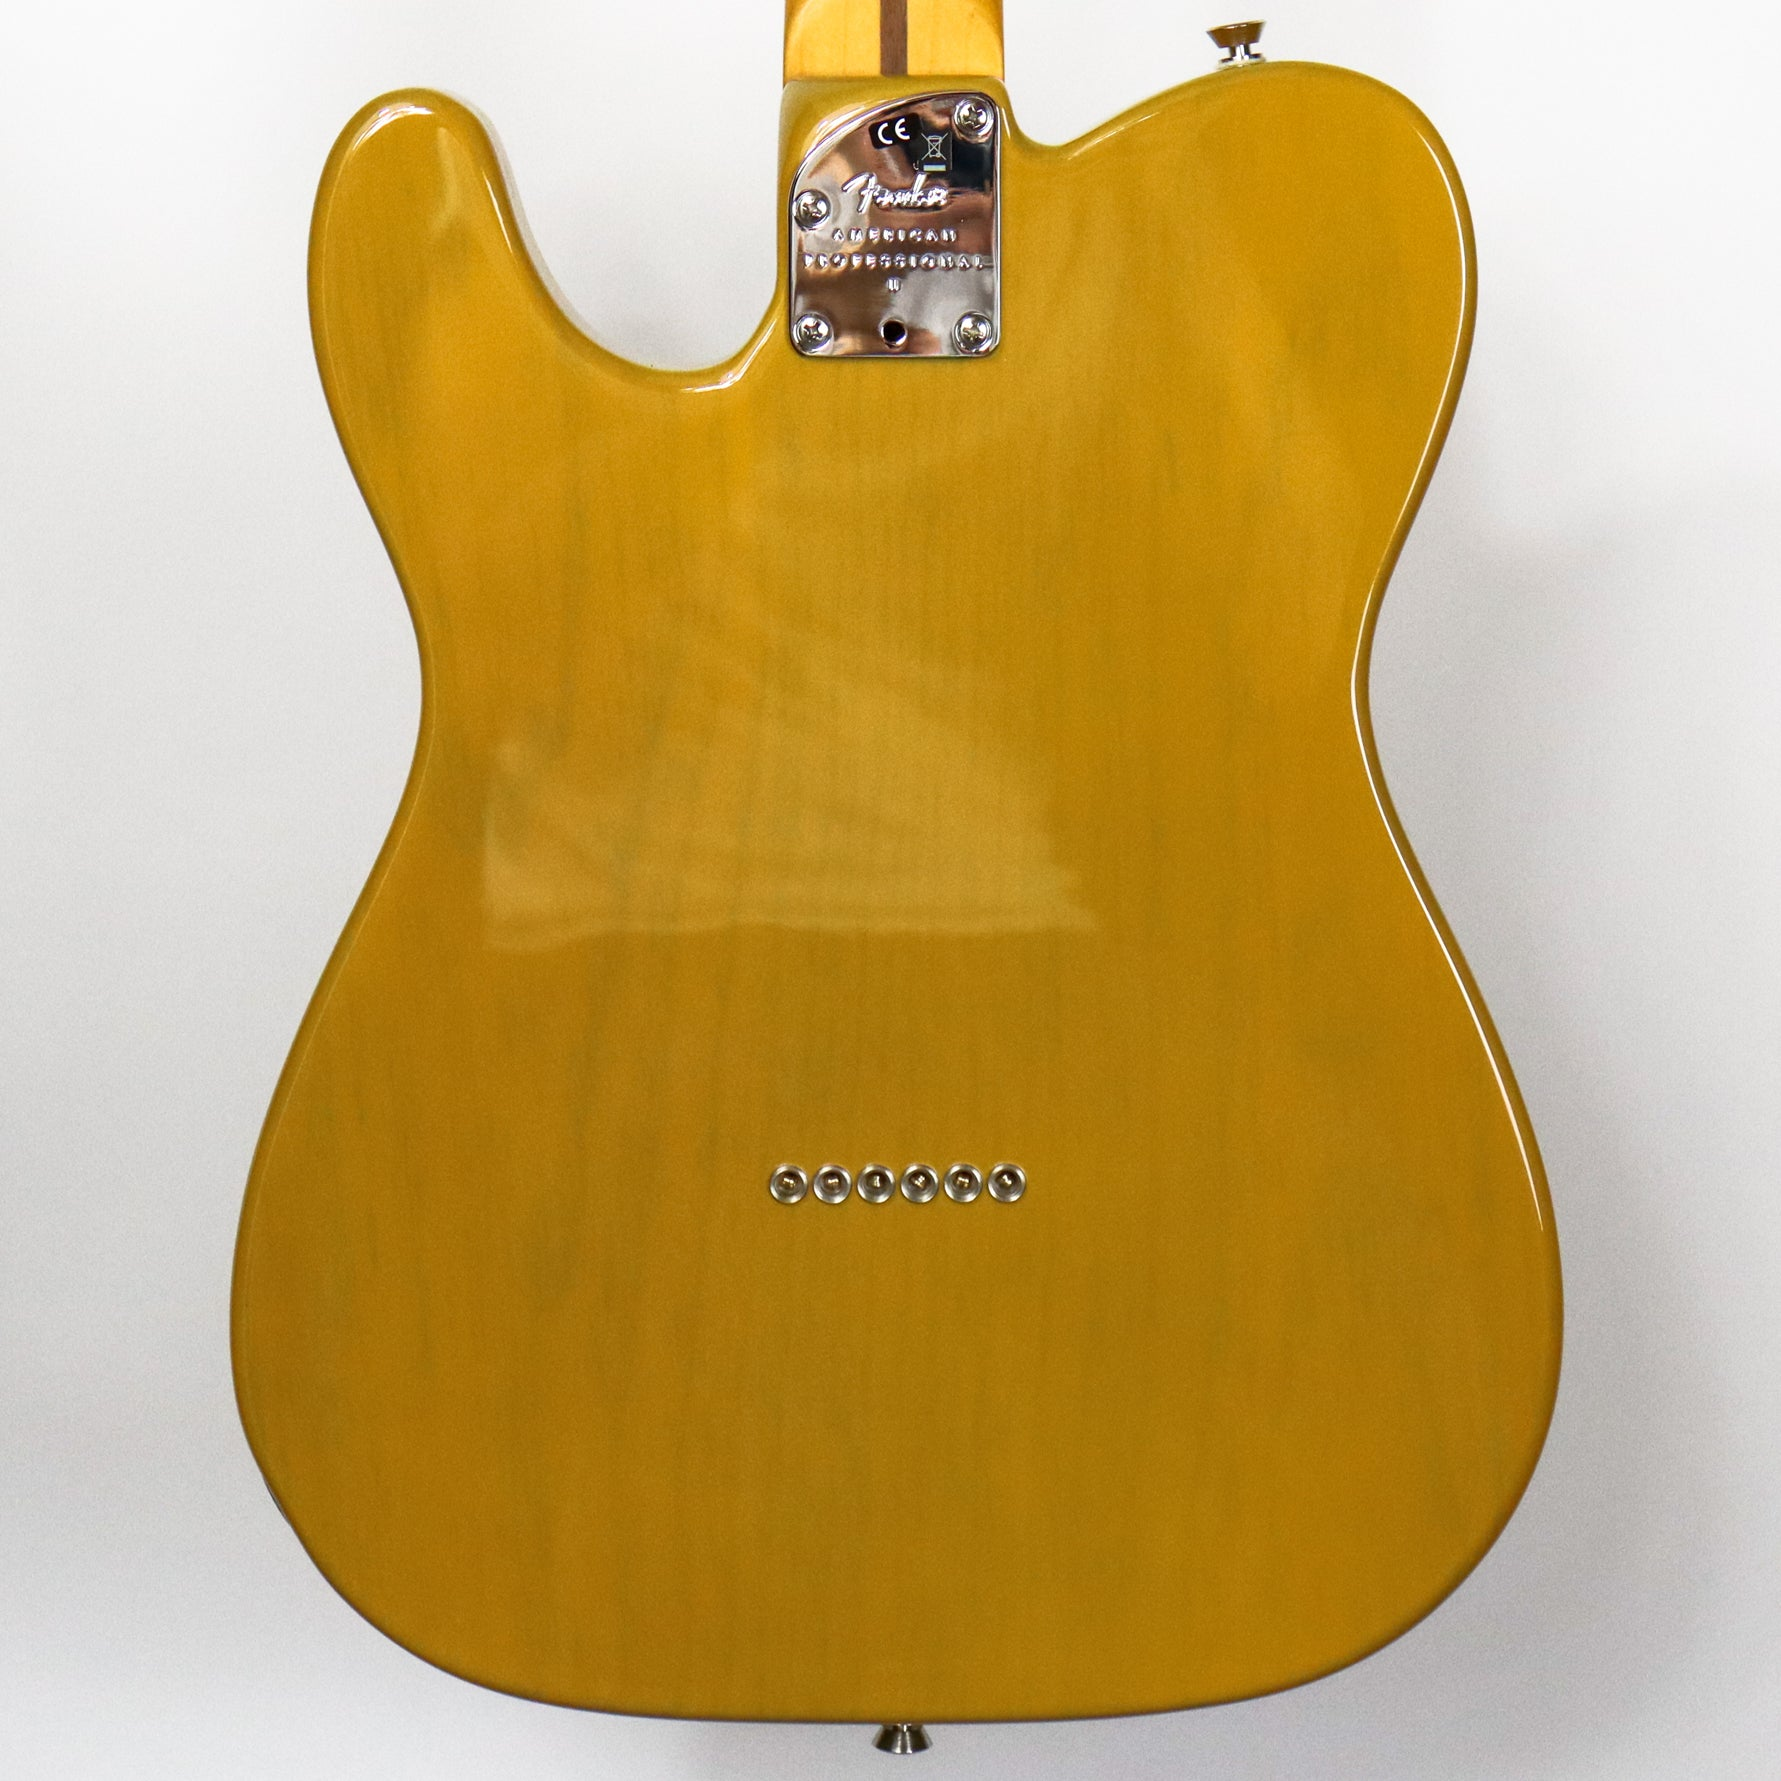 Fender American Professional II Telecaster Butterscotch Blonde